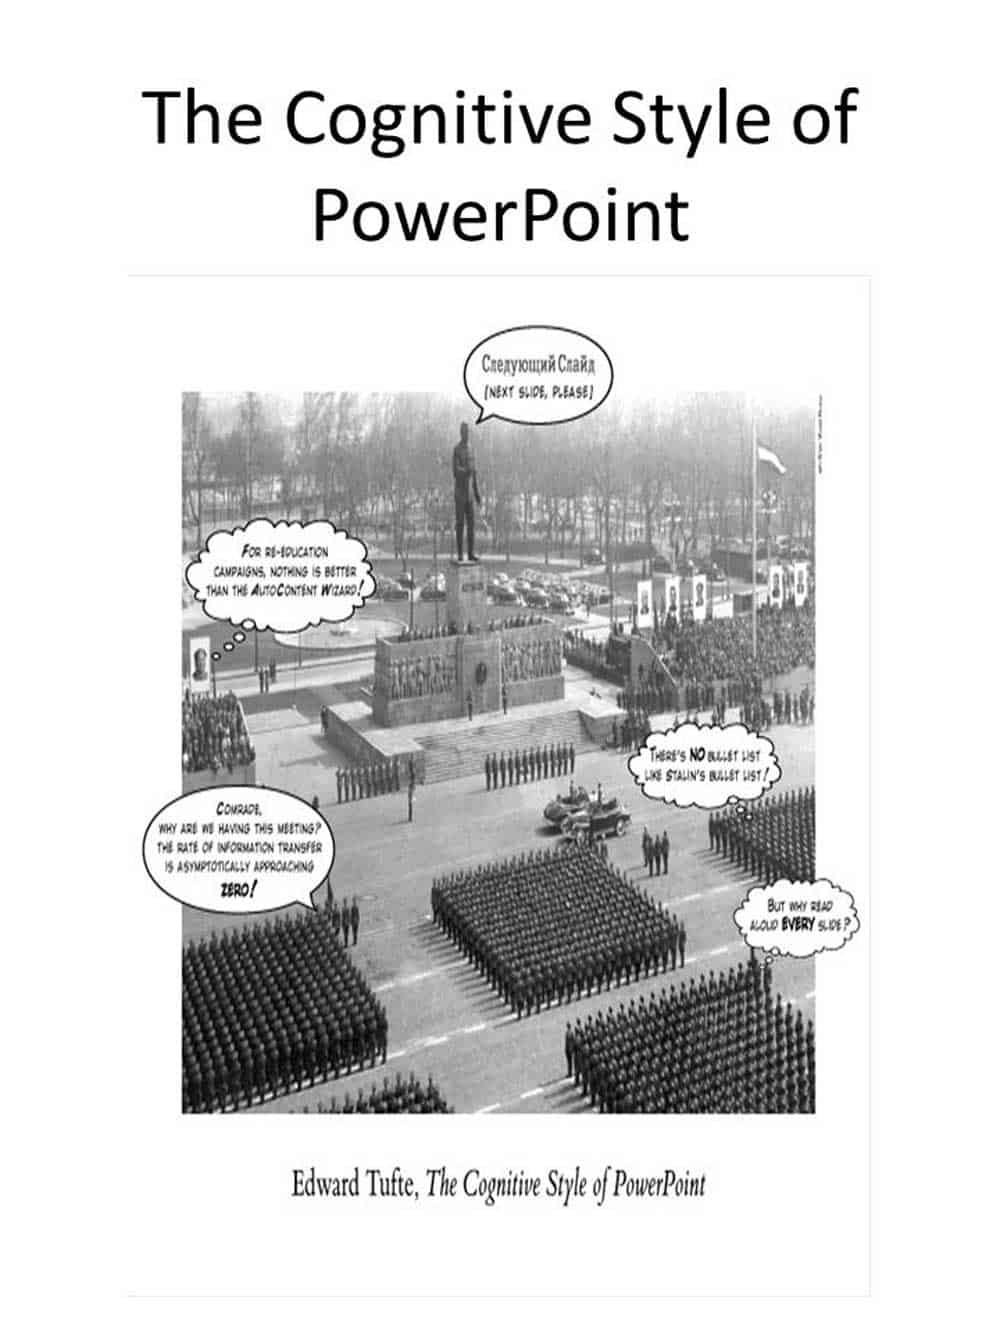 The-Cognitive-Style-of-PowerPoint-design-book